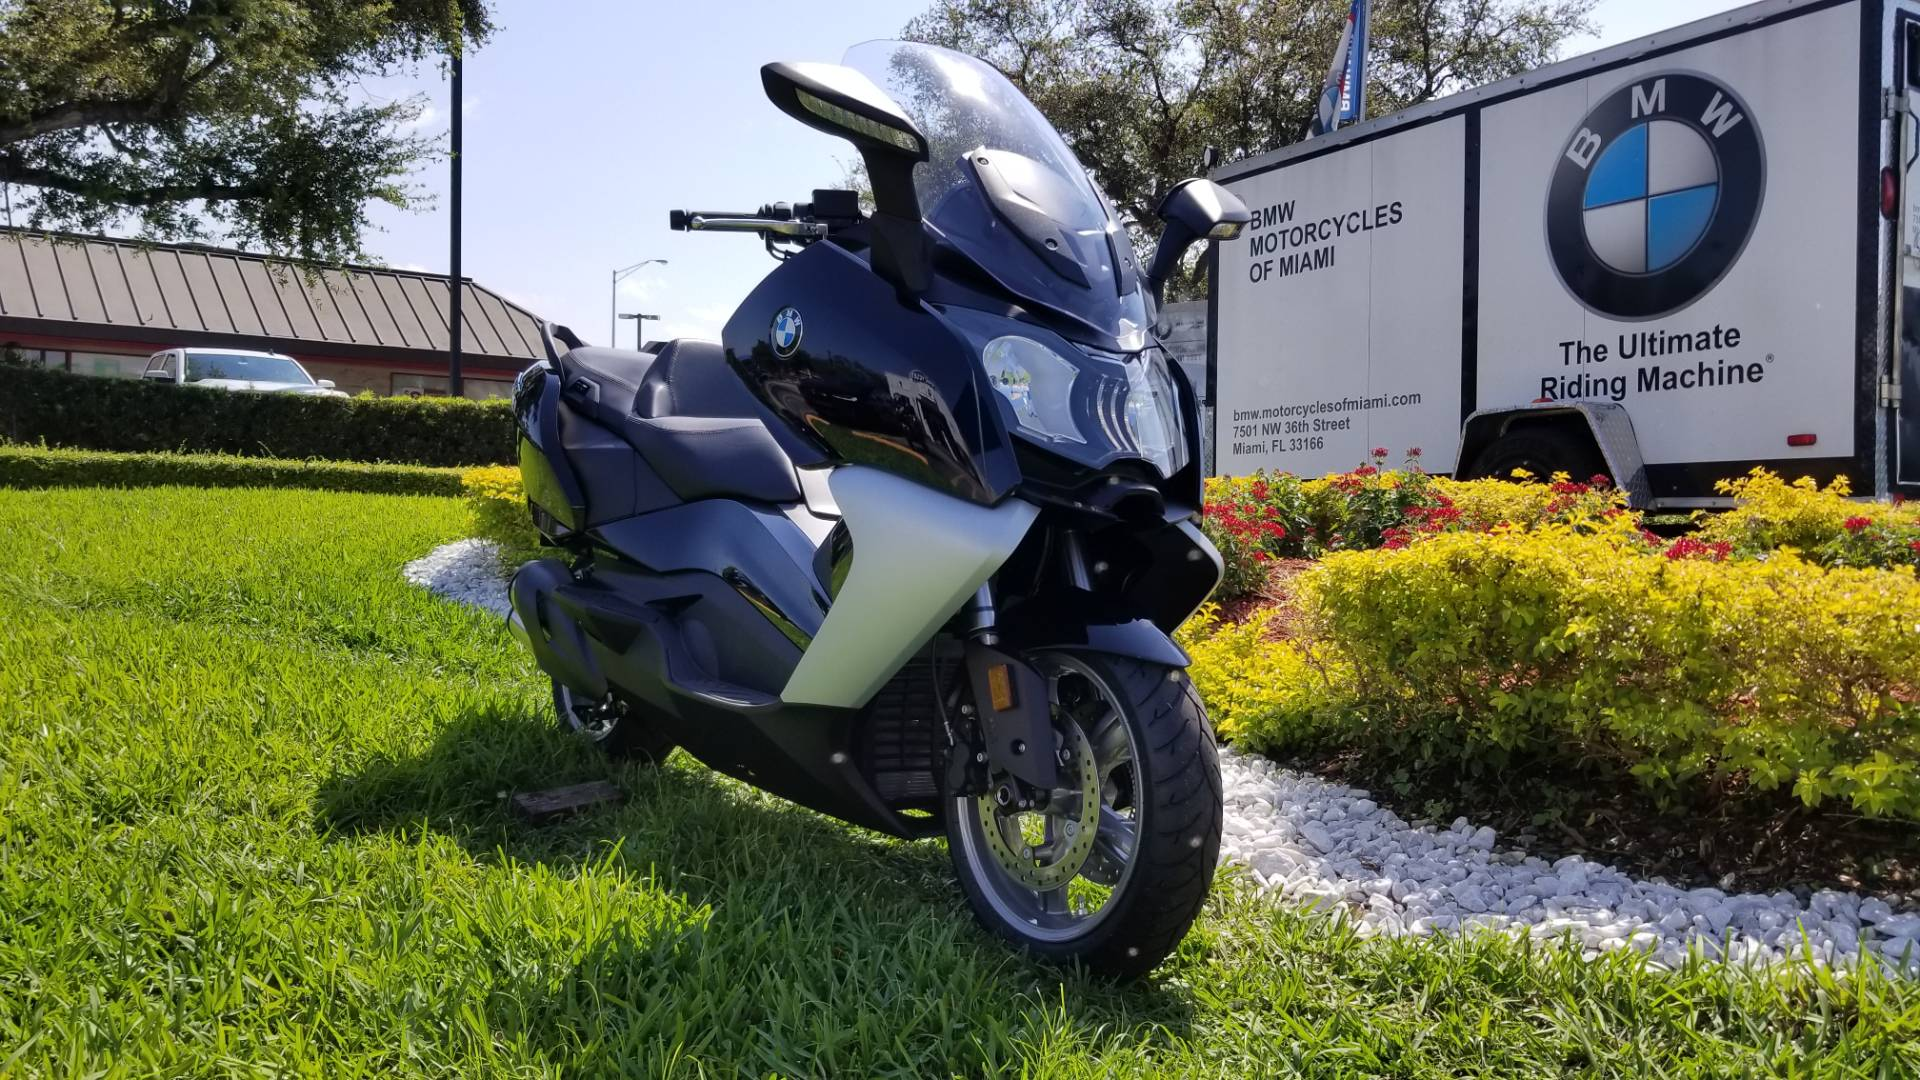 2019 Bmw C 650 Gt In Miami Florida